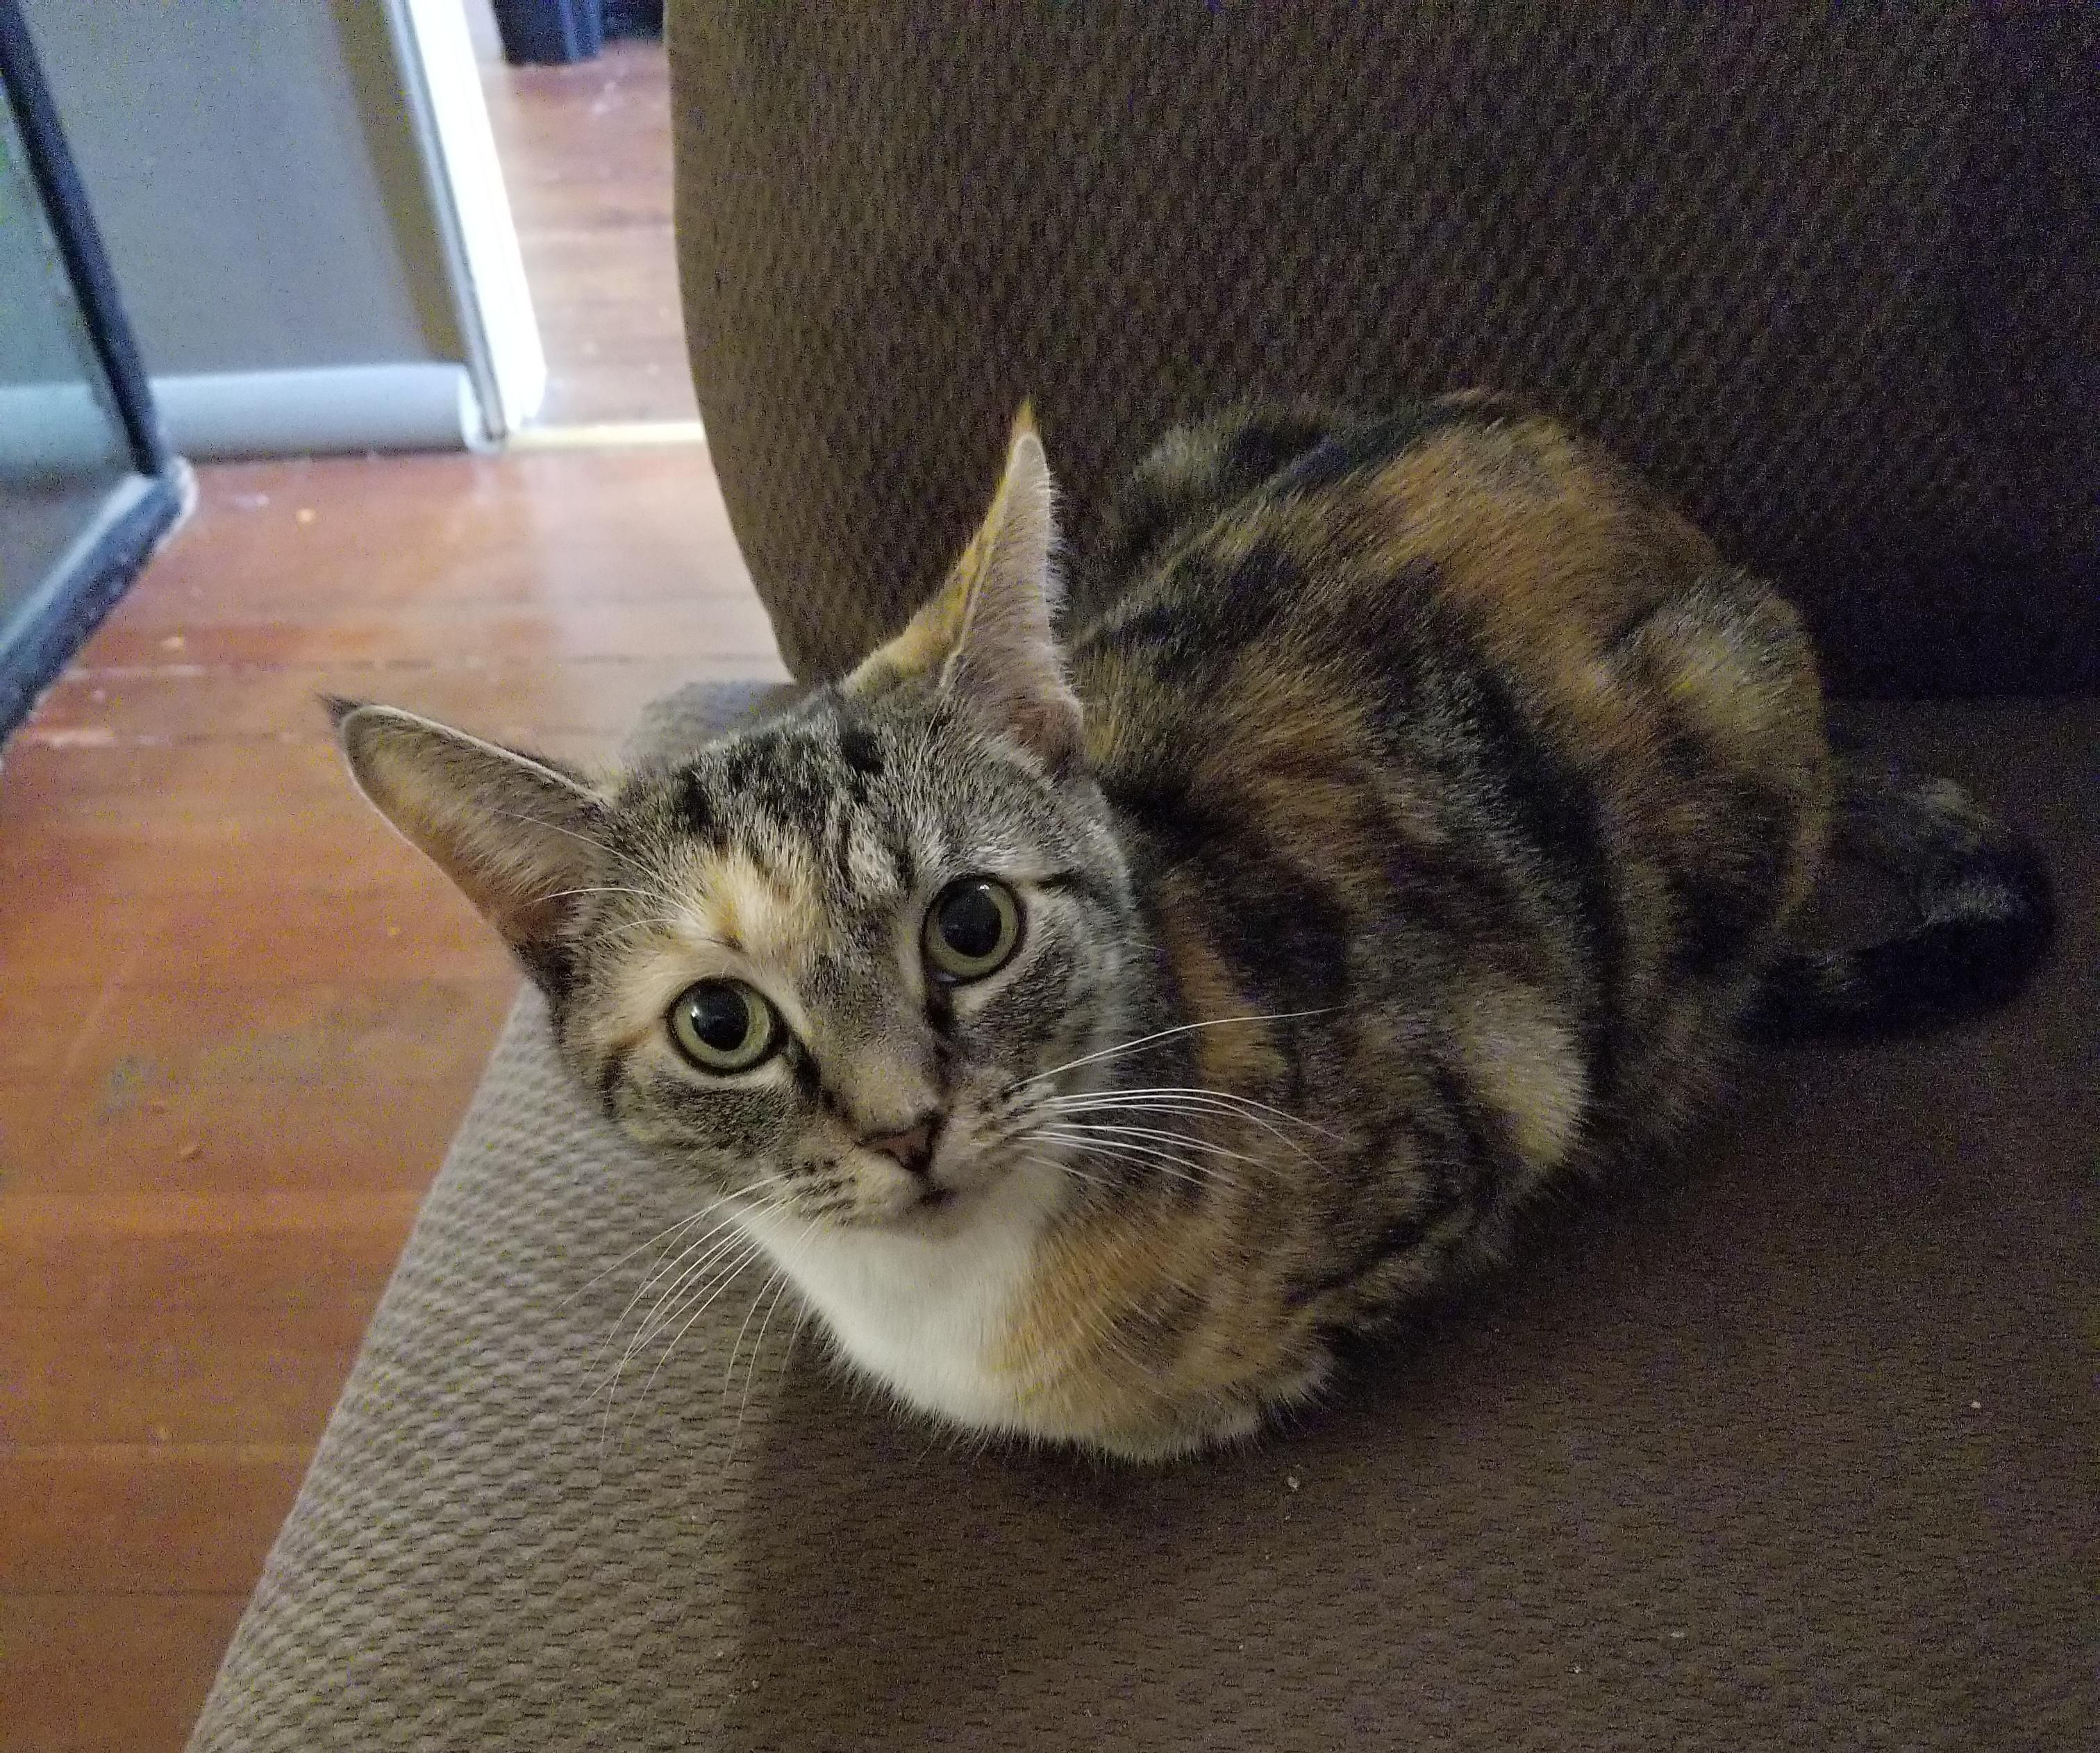 This Is Chloe Kitten She Makes The Cutest Cat Loaf Ever Cats Kittens Cute Cat